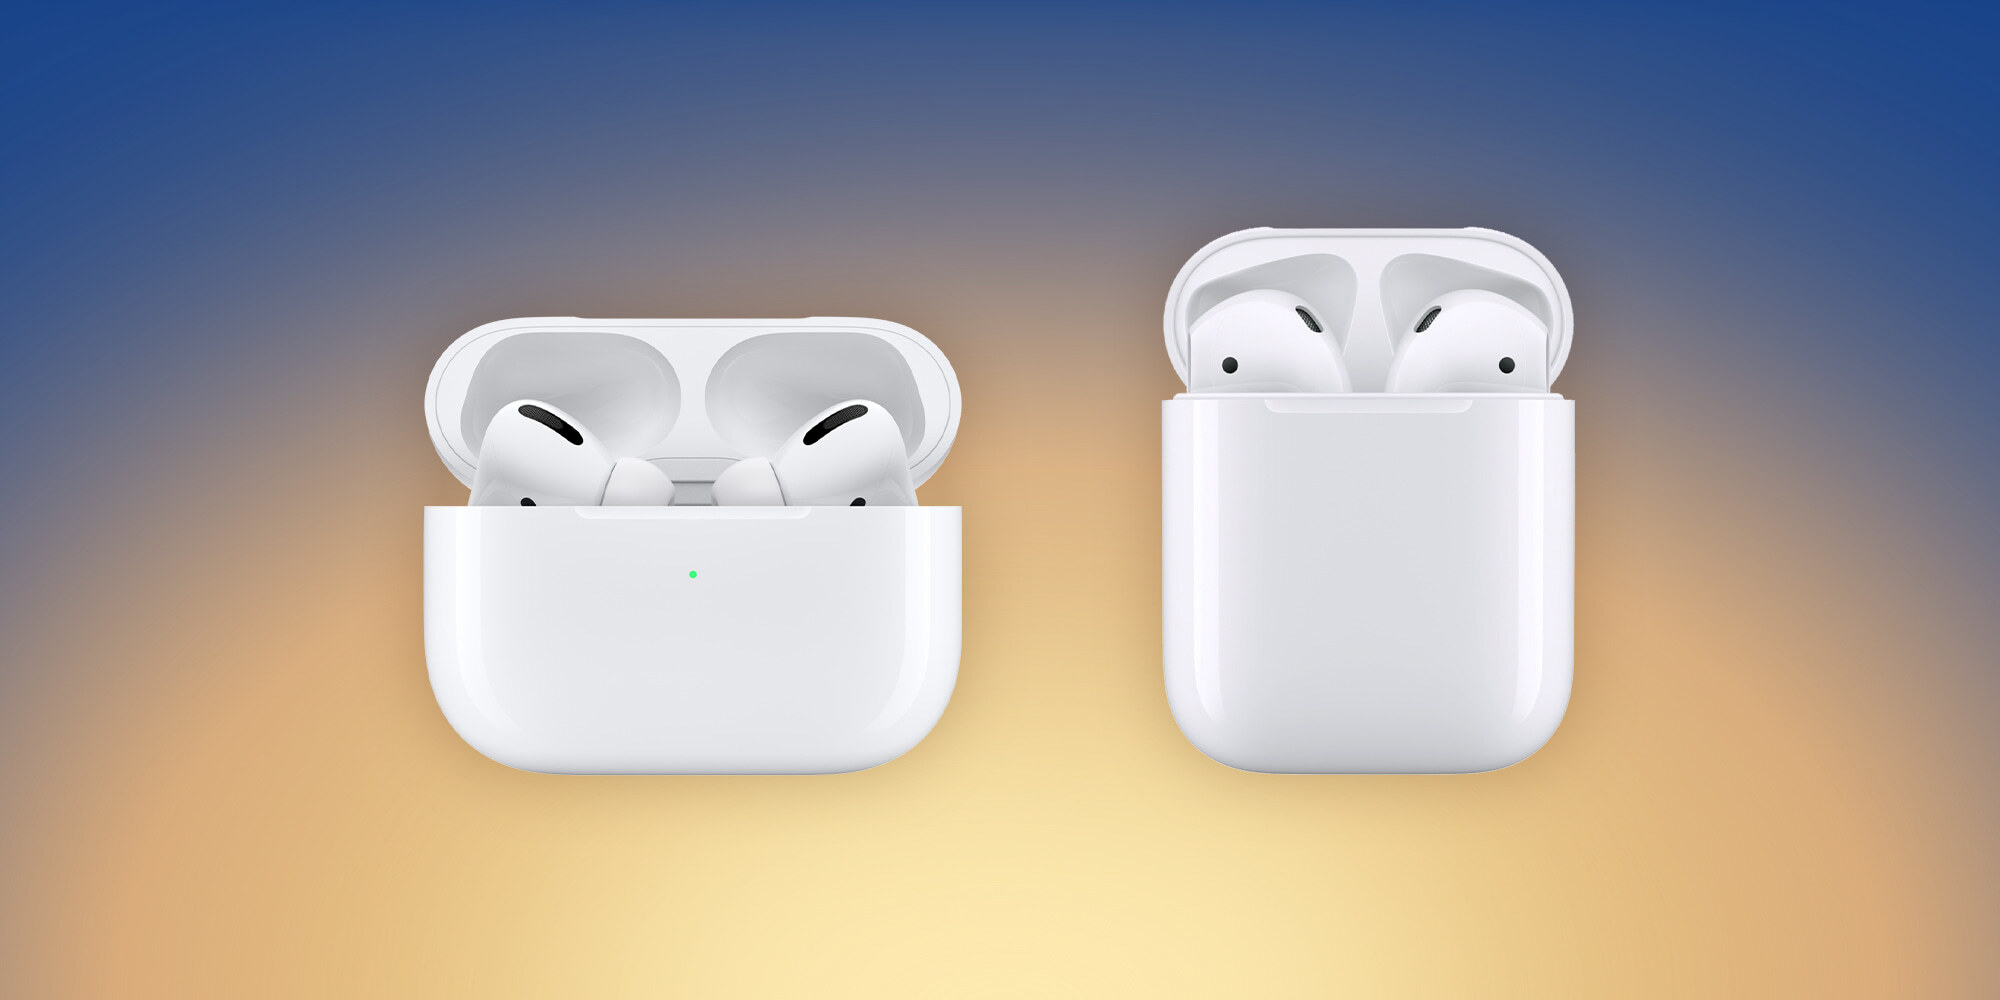 Opinion: AirPods 3 rumors suggest Apple is going all-in on AirPods Pro design, here's why that's bad